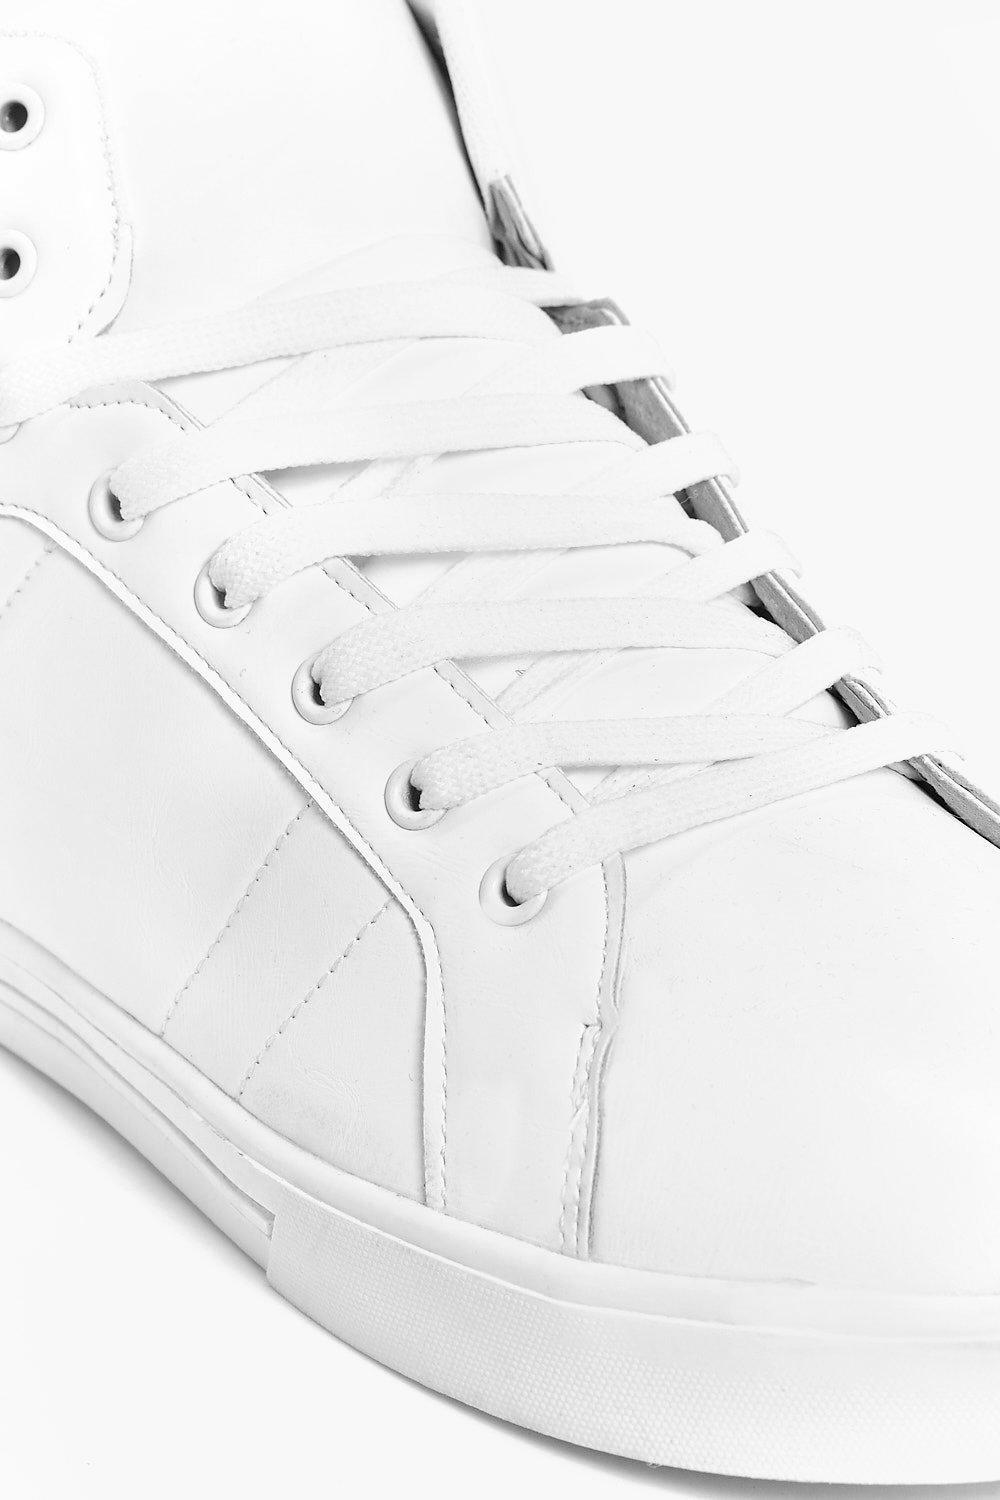 Boohoo Denim High Top Trainers in White for Men